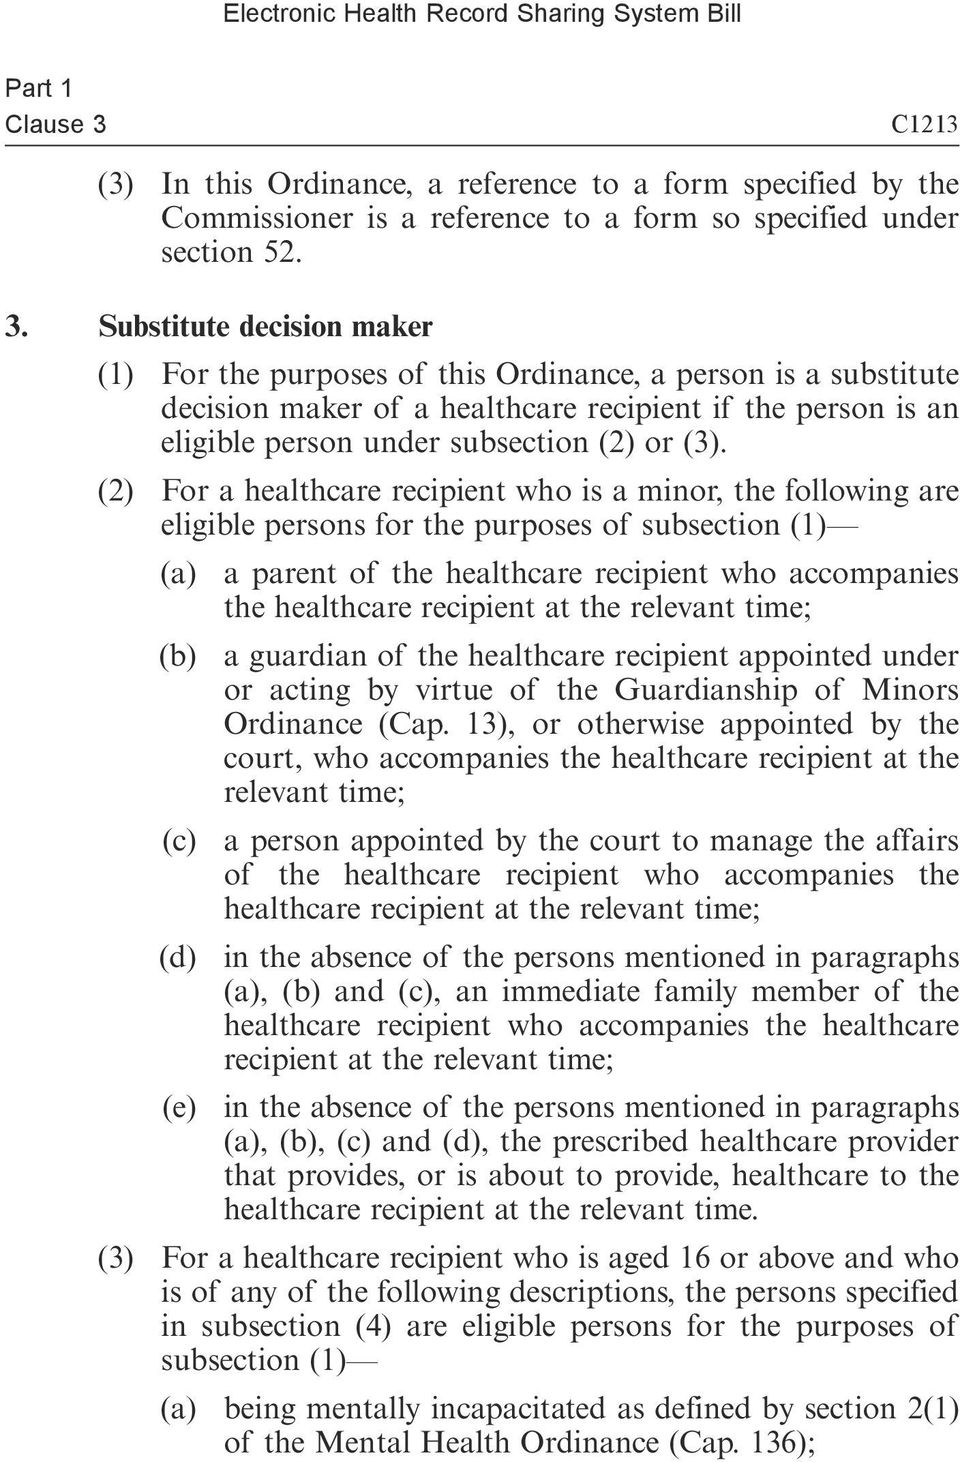 Substitute decision maker (1) For the purposes of this Ordinance, a person is a substitute decision maker of a healthcare recipient if the person is an eligible person under subsection (2) or (3).